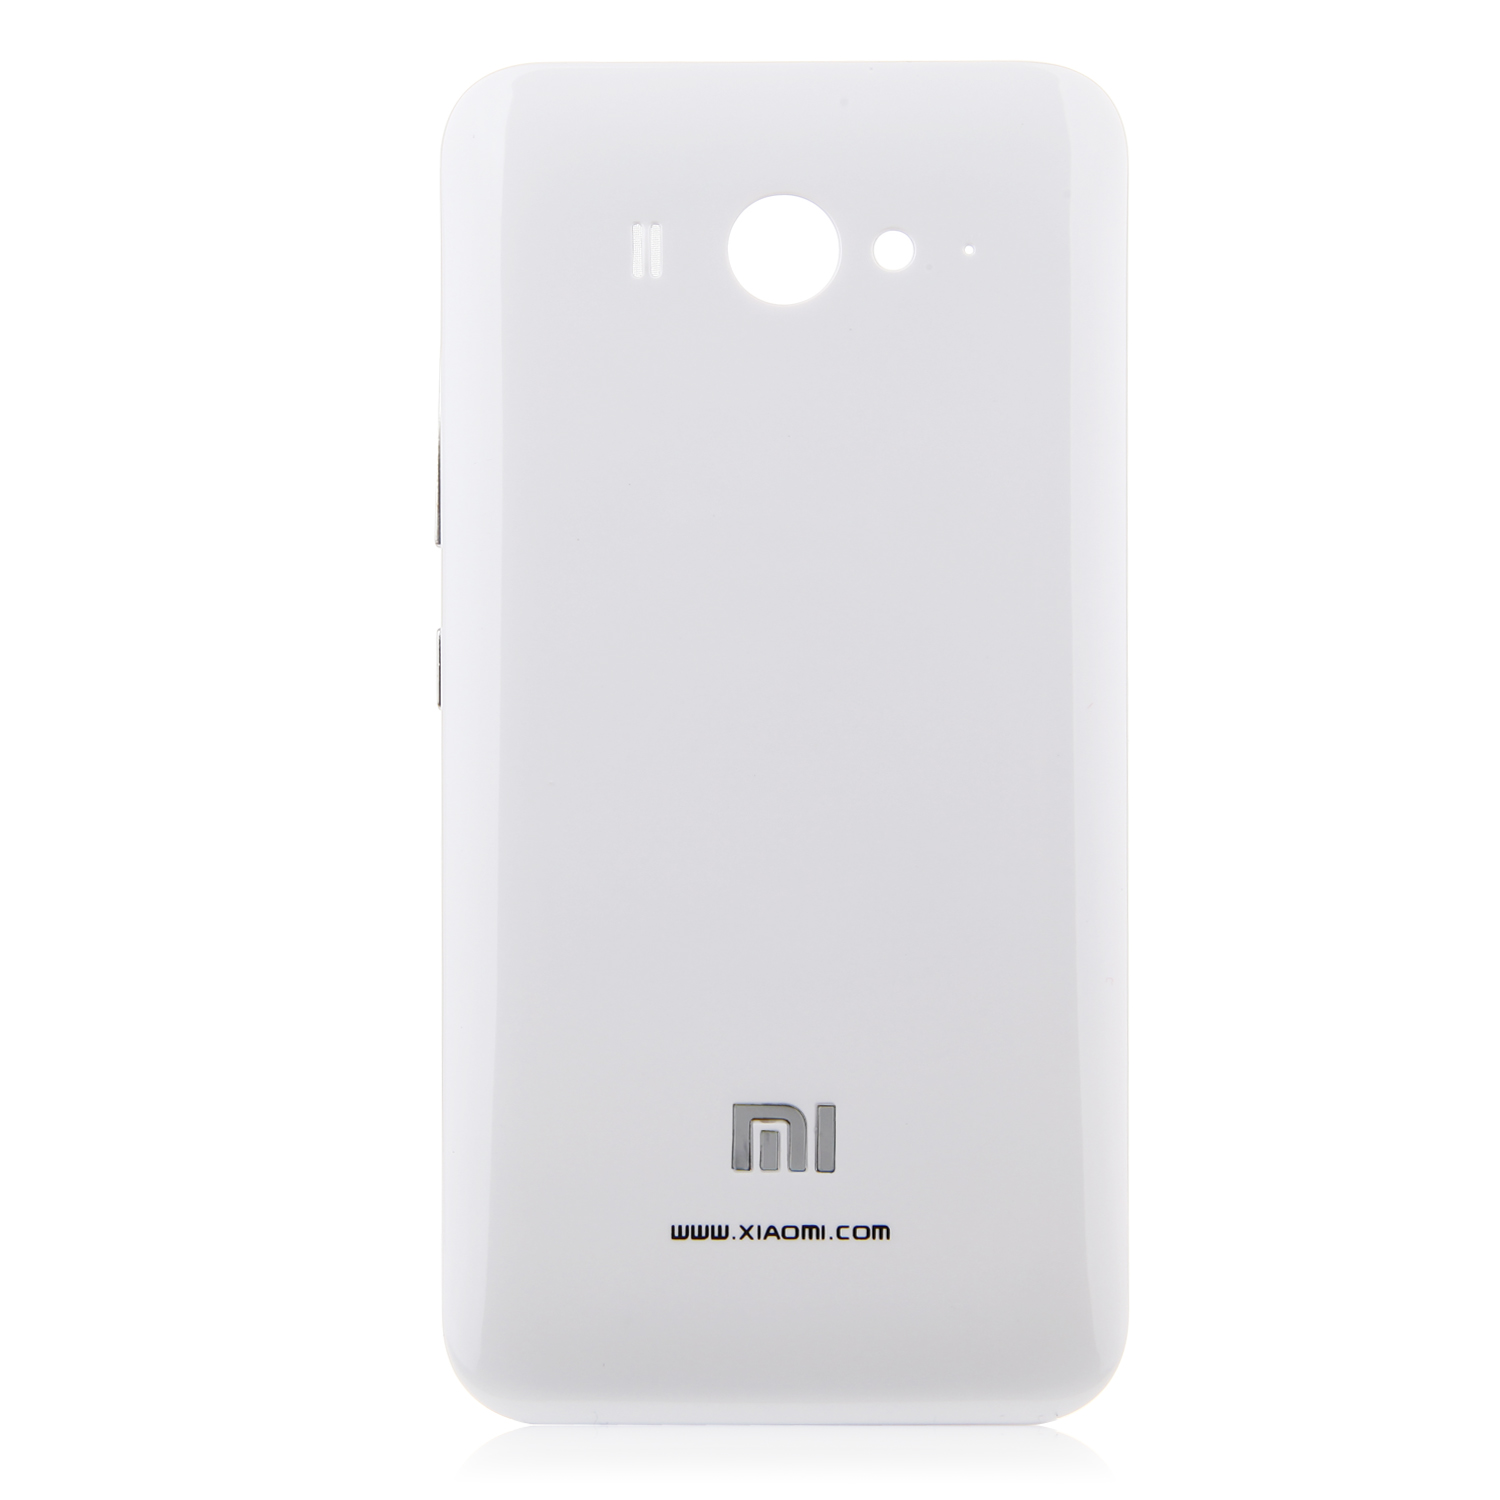 Replacement Battery Cover Back Case for XIAOMI 2S Smartphone White